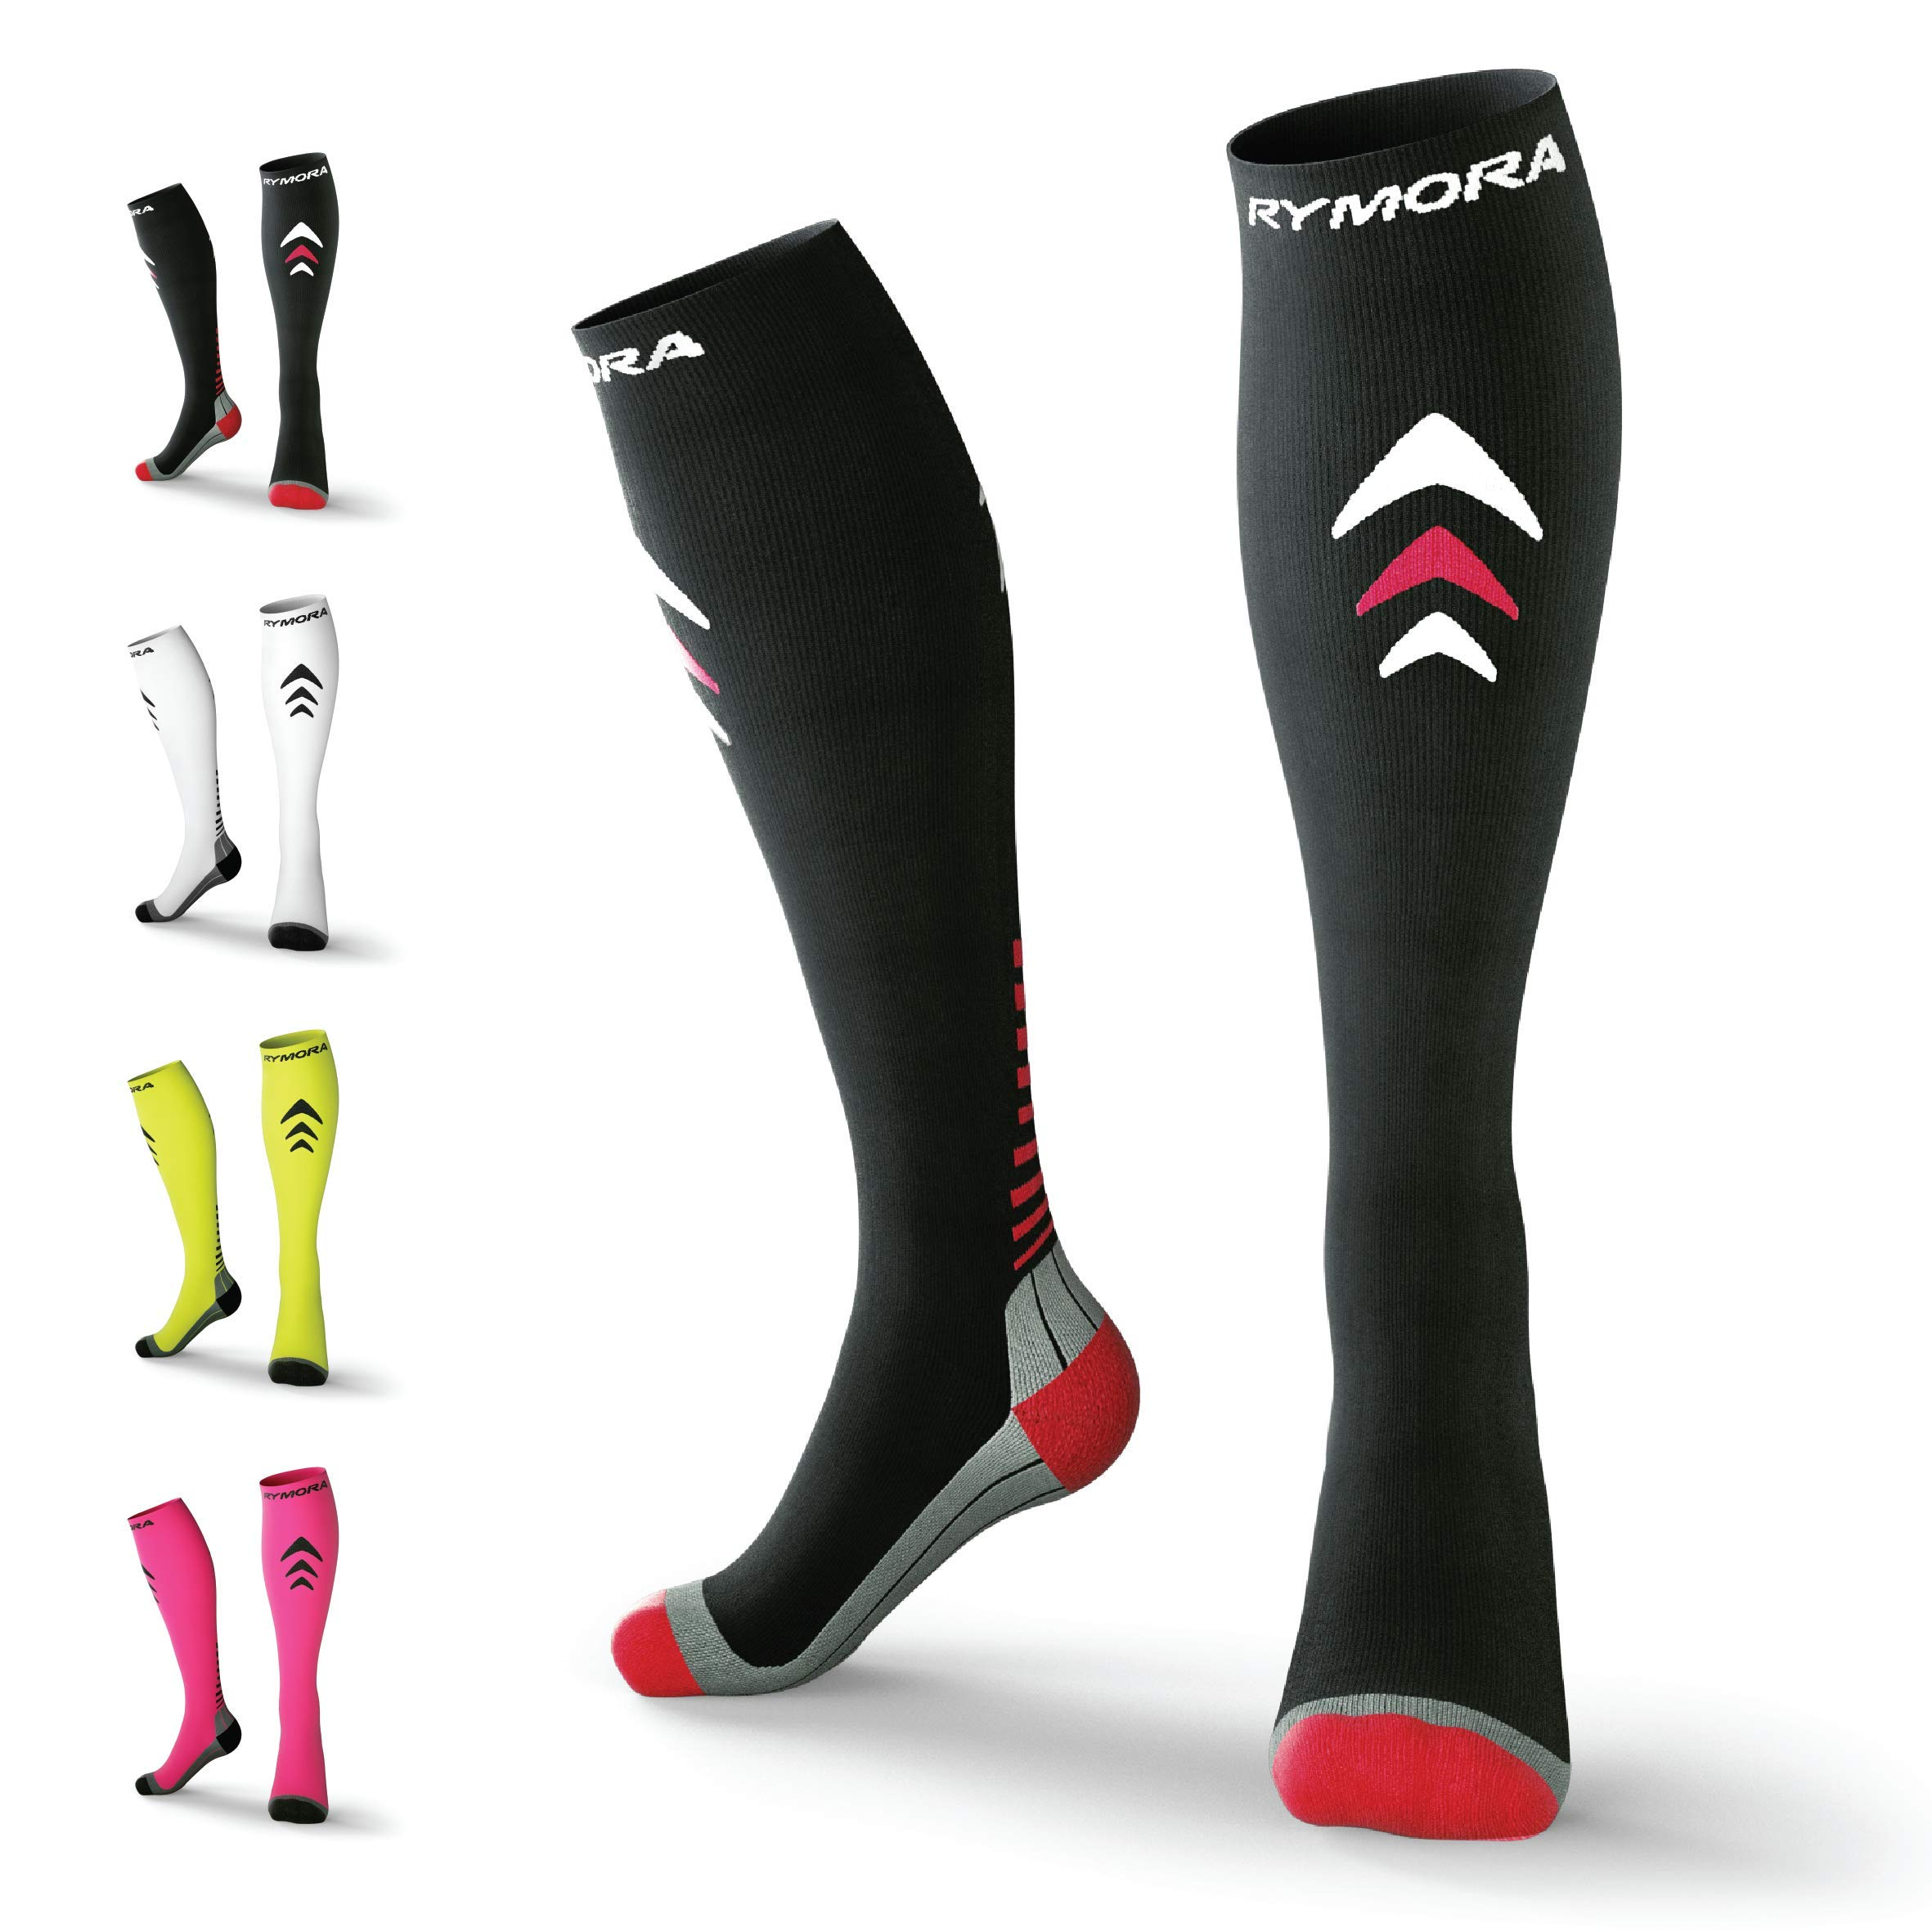 24f4b3720d Rymora Compression Socks (Cushioned, Graduated Compression, Ergonomic fit  for Men and Women,